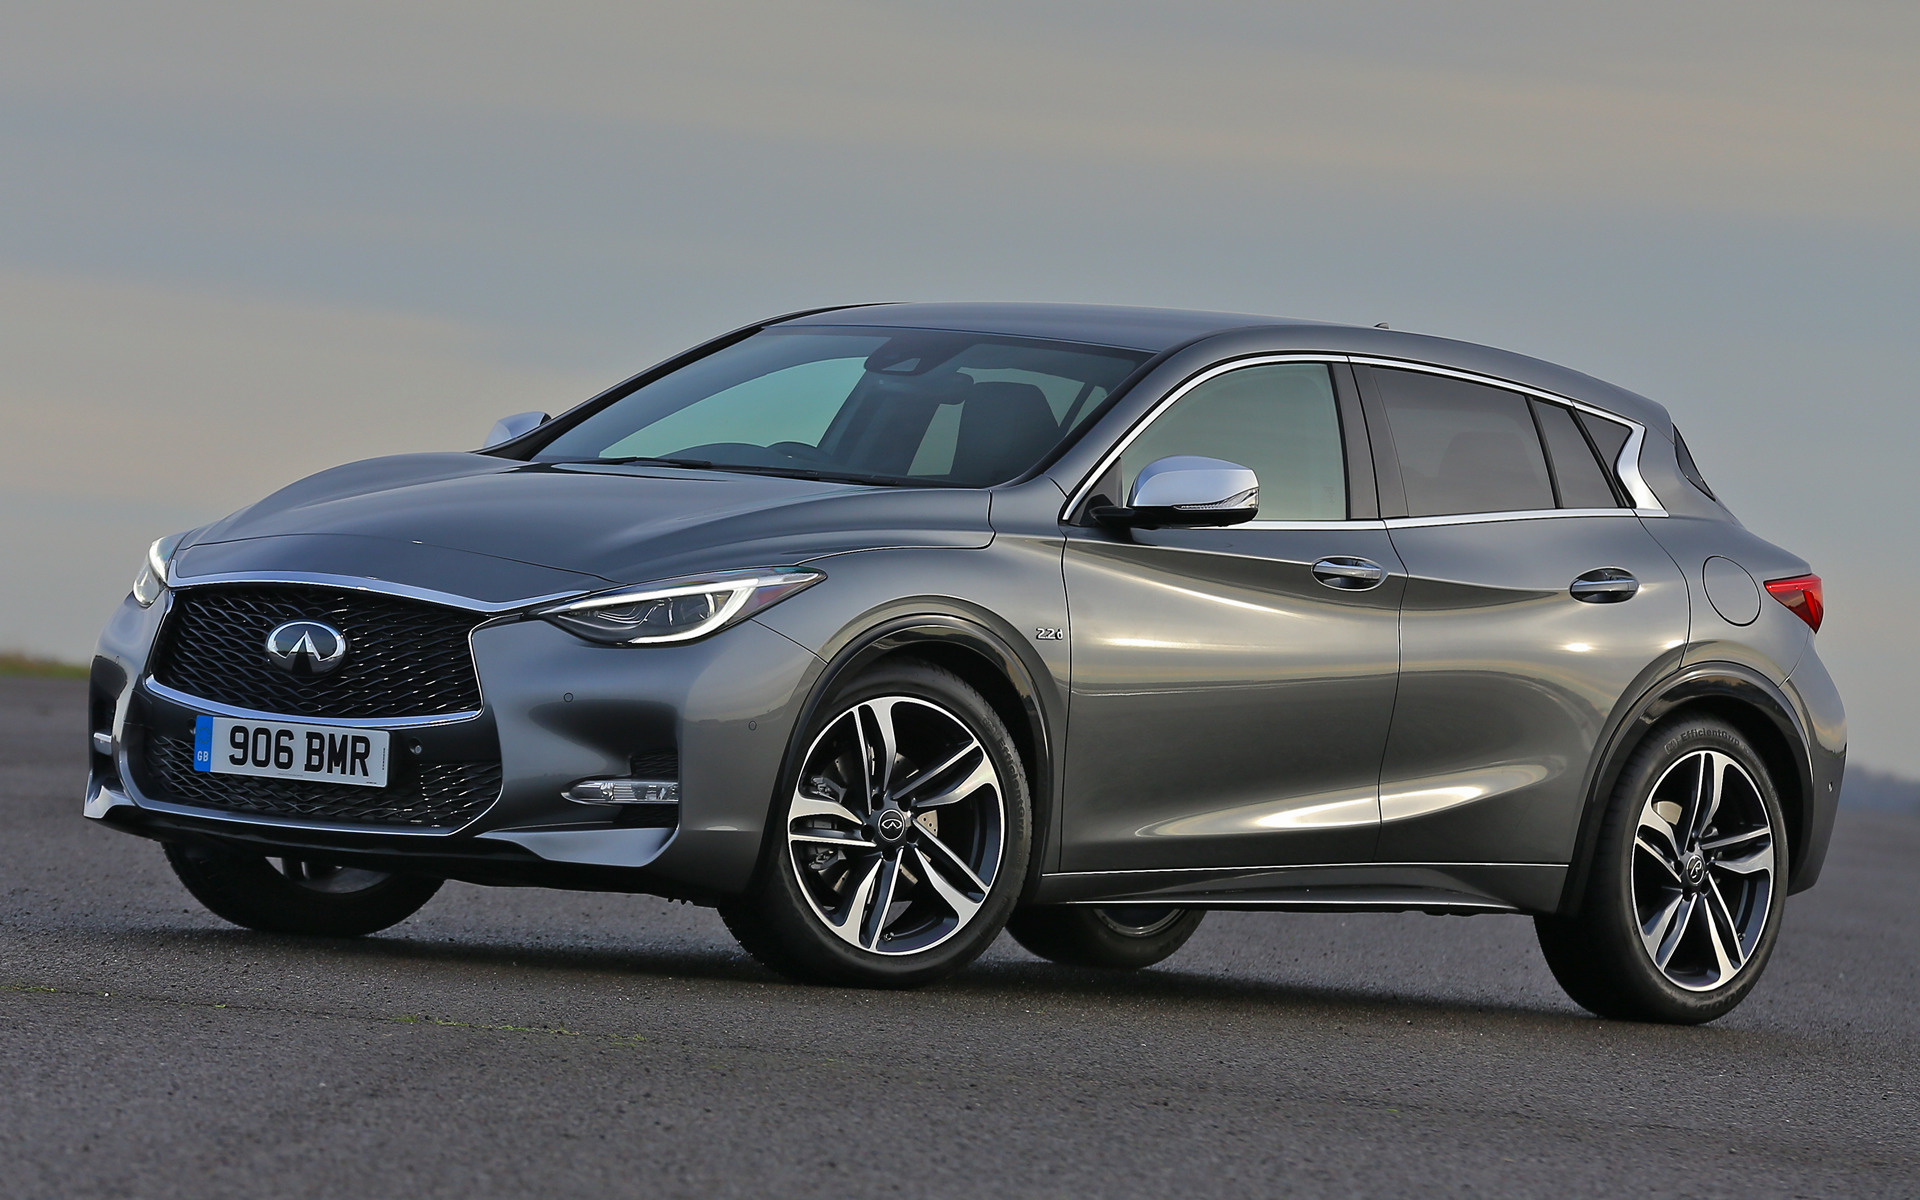 2016 infiniti q30 sport uk  wallpapers and hd images